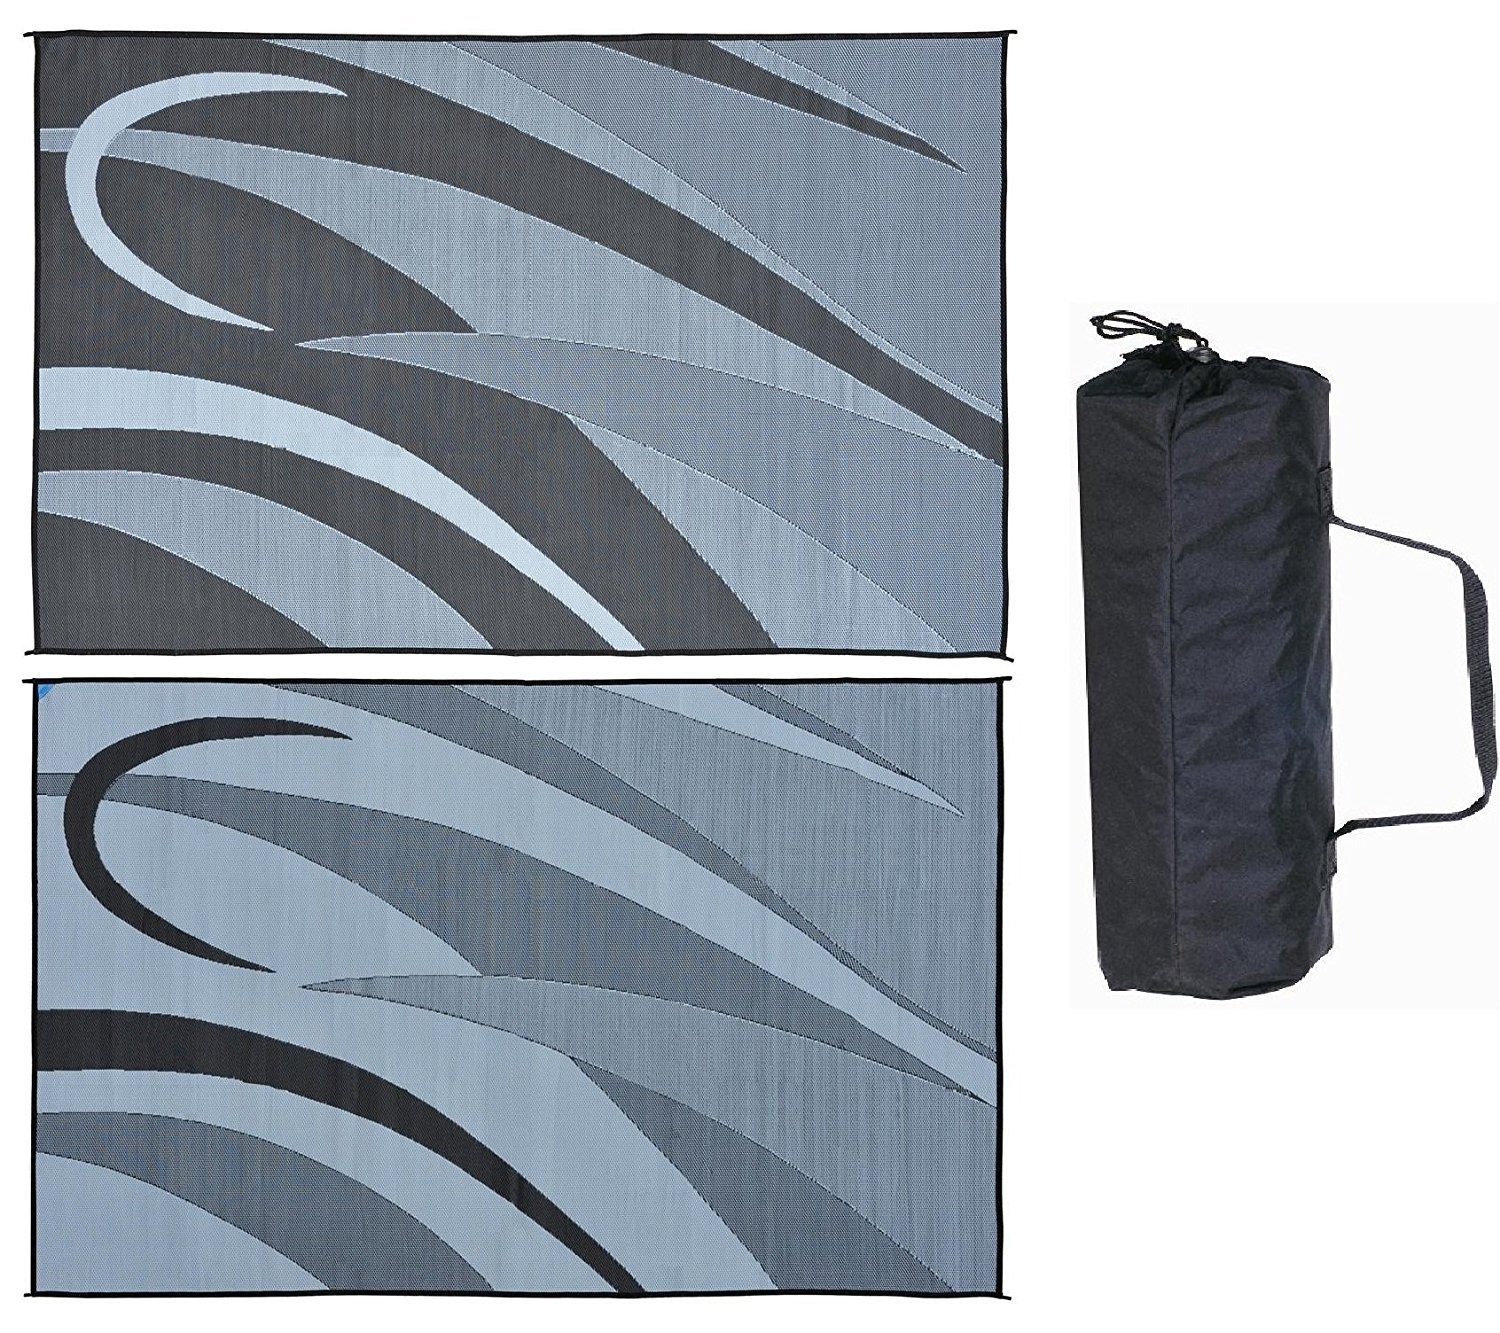 Black Silver 8' x 12' Ming's Mark GC1 Black Silver 8' x 20' Graphic Mat